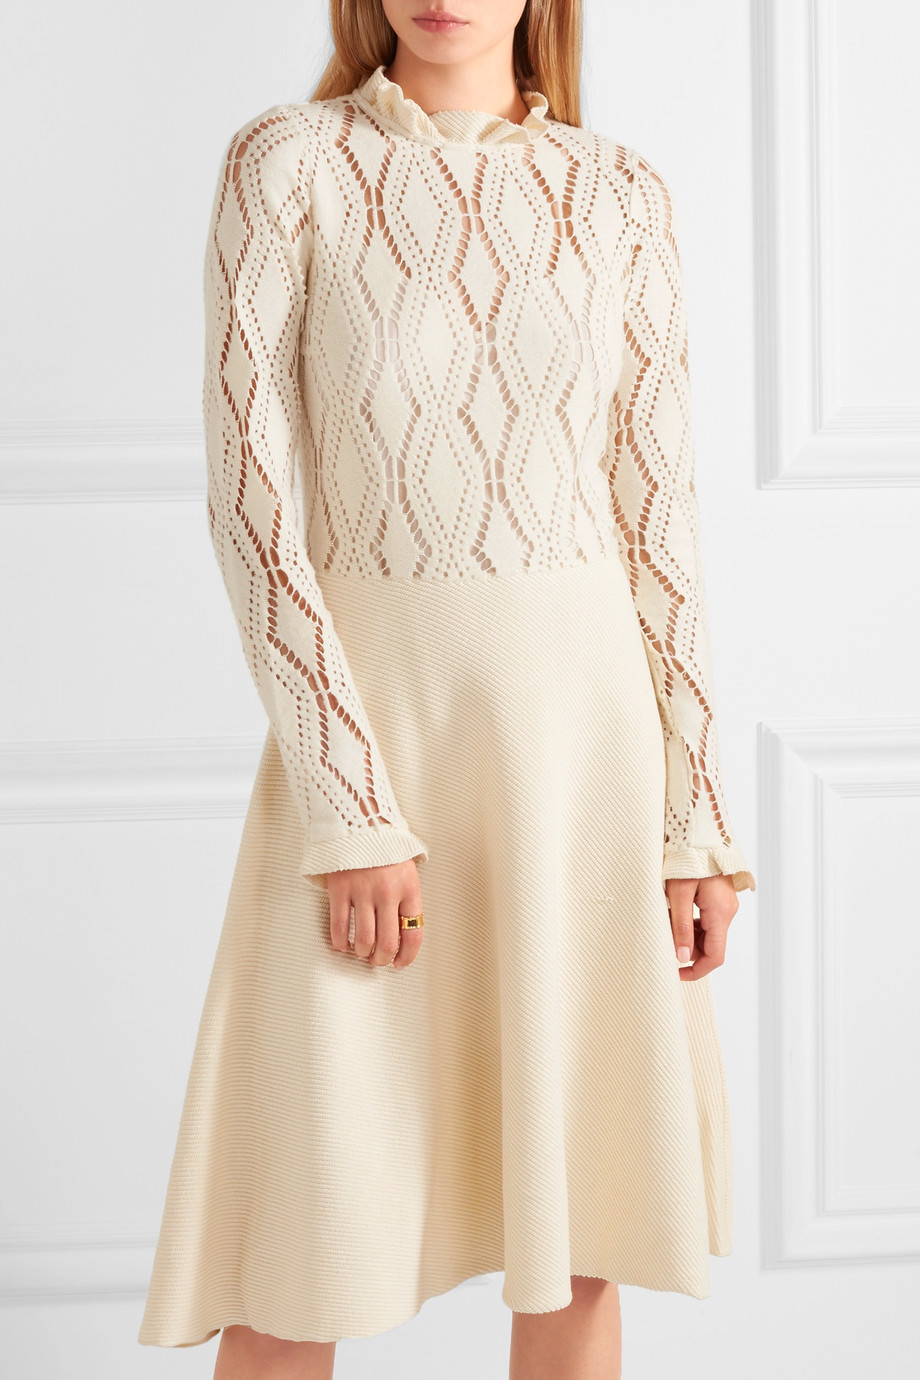 Cream See by Chloé dress